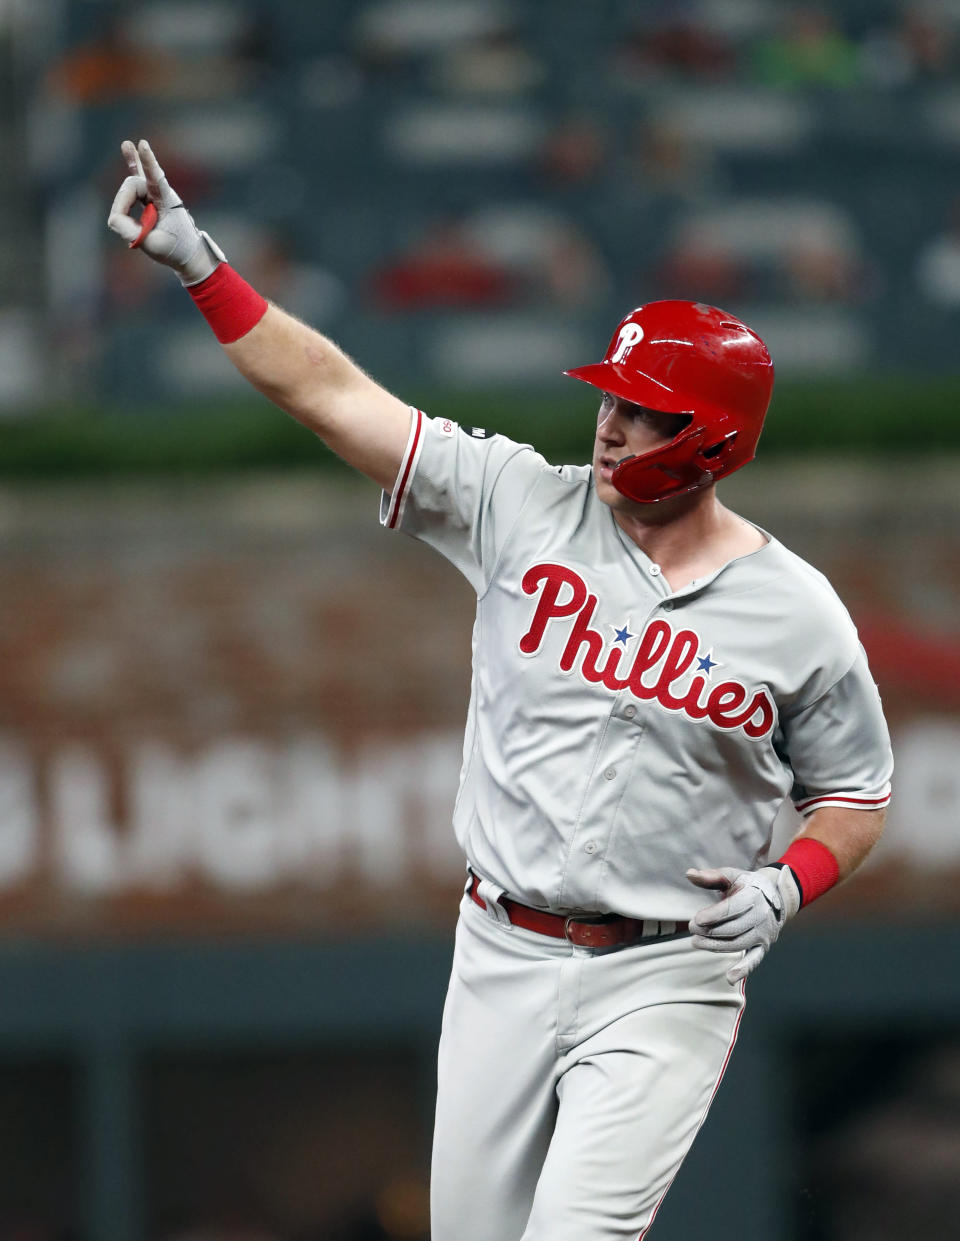 Philadelphia Phillies' Rhys Hoskins gestures as he rounds the bases after hitting a two-run home run during the seventh inning of the team's baseball game against the Atlanta Braves on Friday, June 14, 2019, in Atlanta. (AP Photo/John Bazemore)